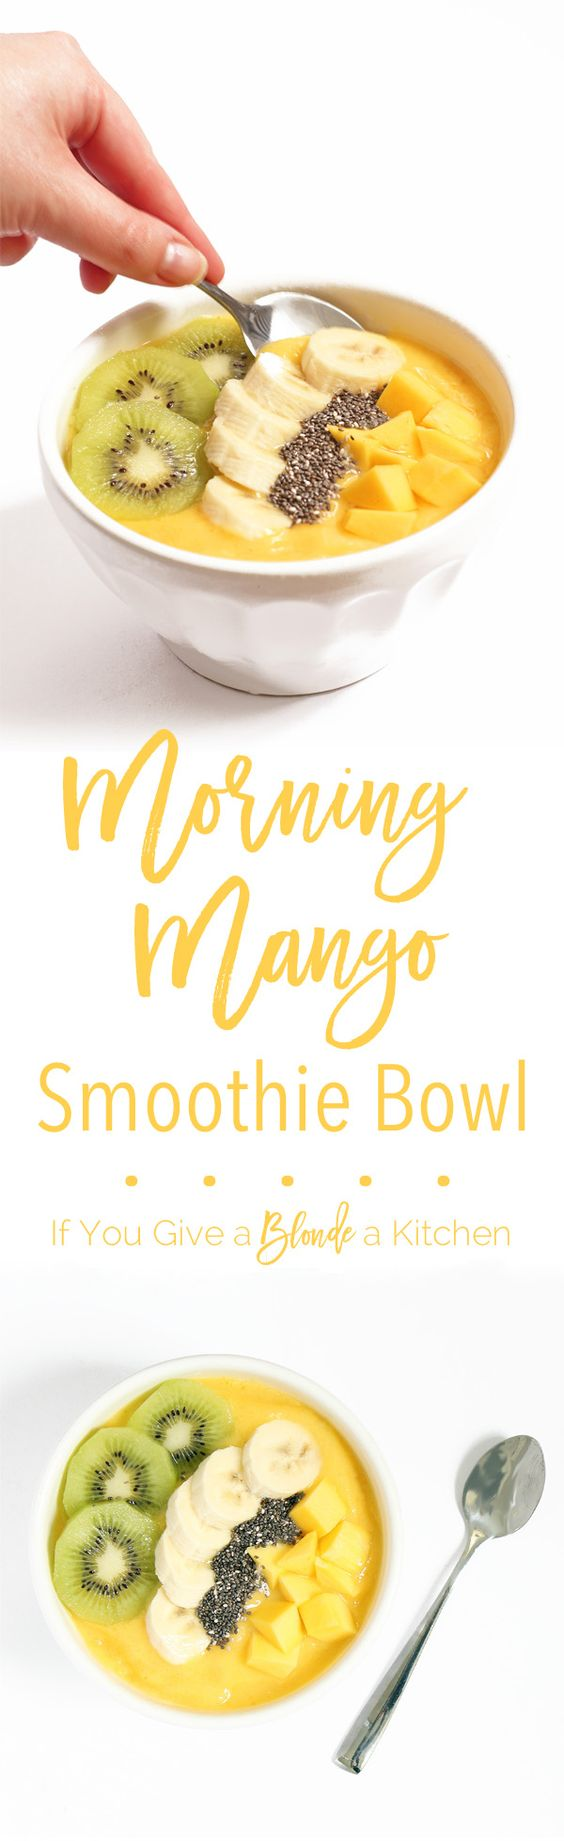 This morning mango smoothie bowl is like a bowl of sunshine for breakfast! Made with mango, pineapple, banana and coconut milk, this smoothie bowl recipe is gluten-free and dairy-free. | Recipe by @Haleydwilliams